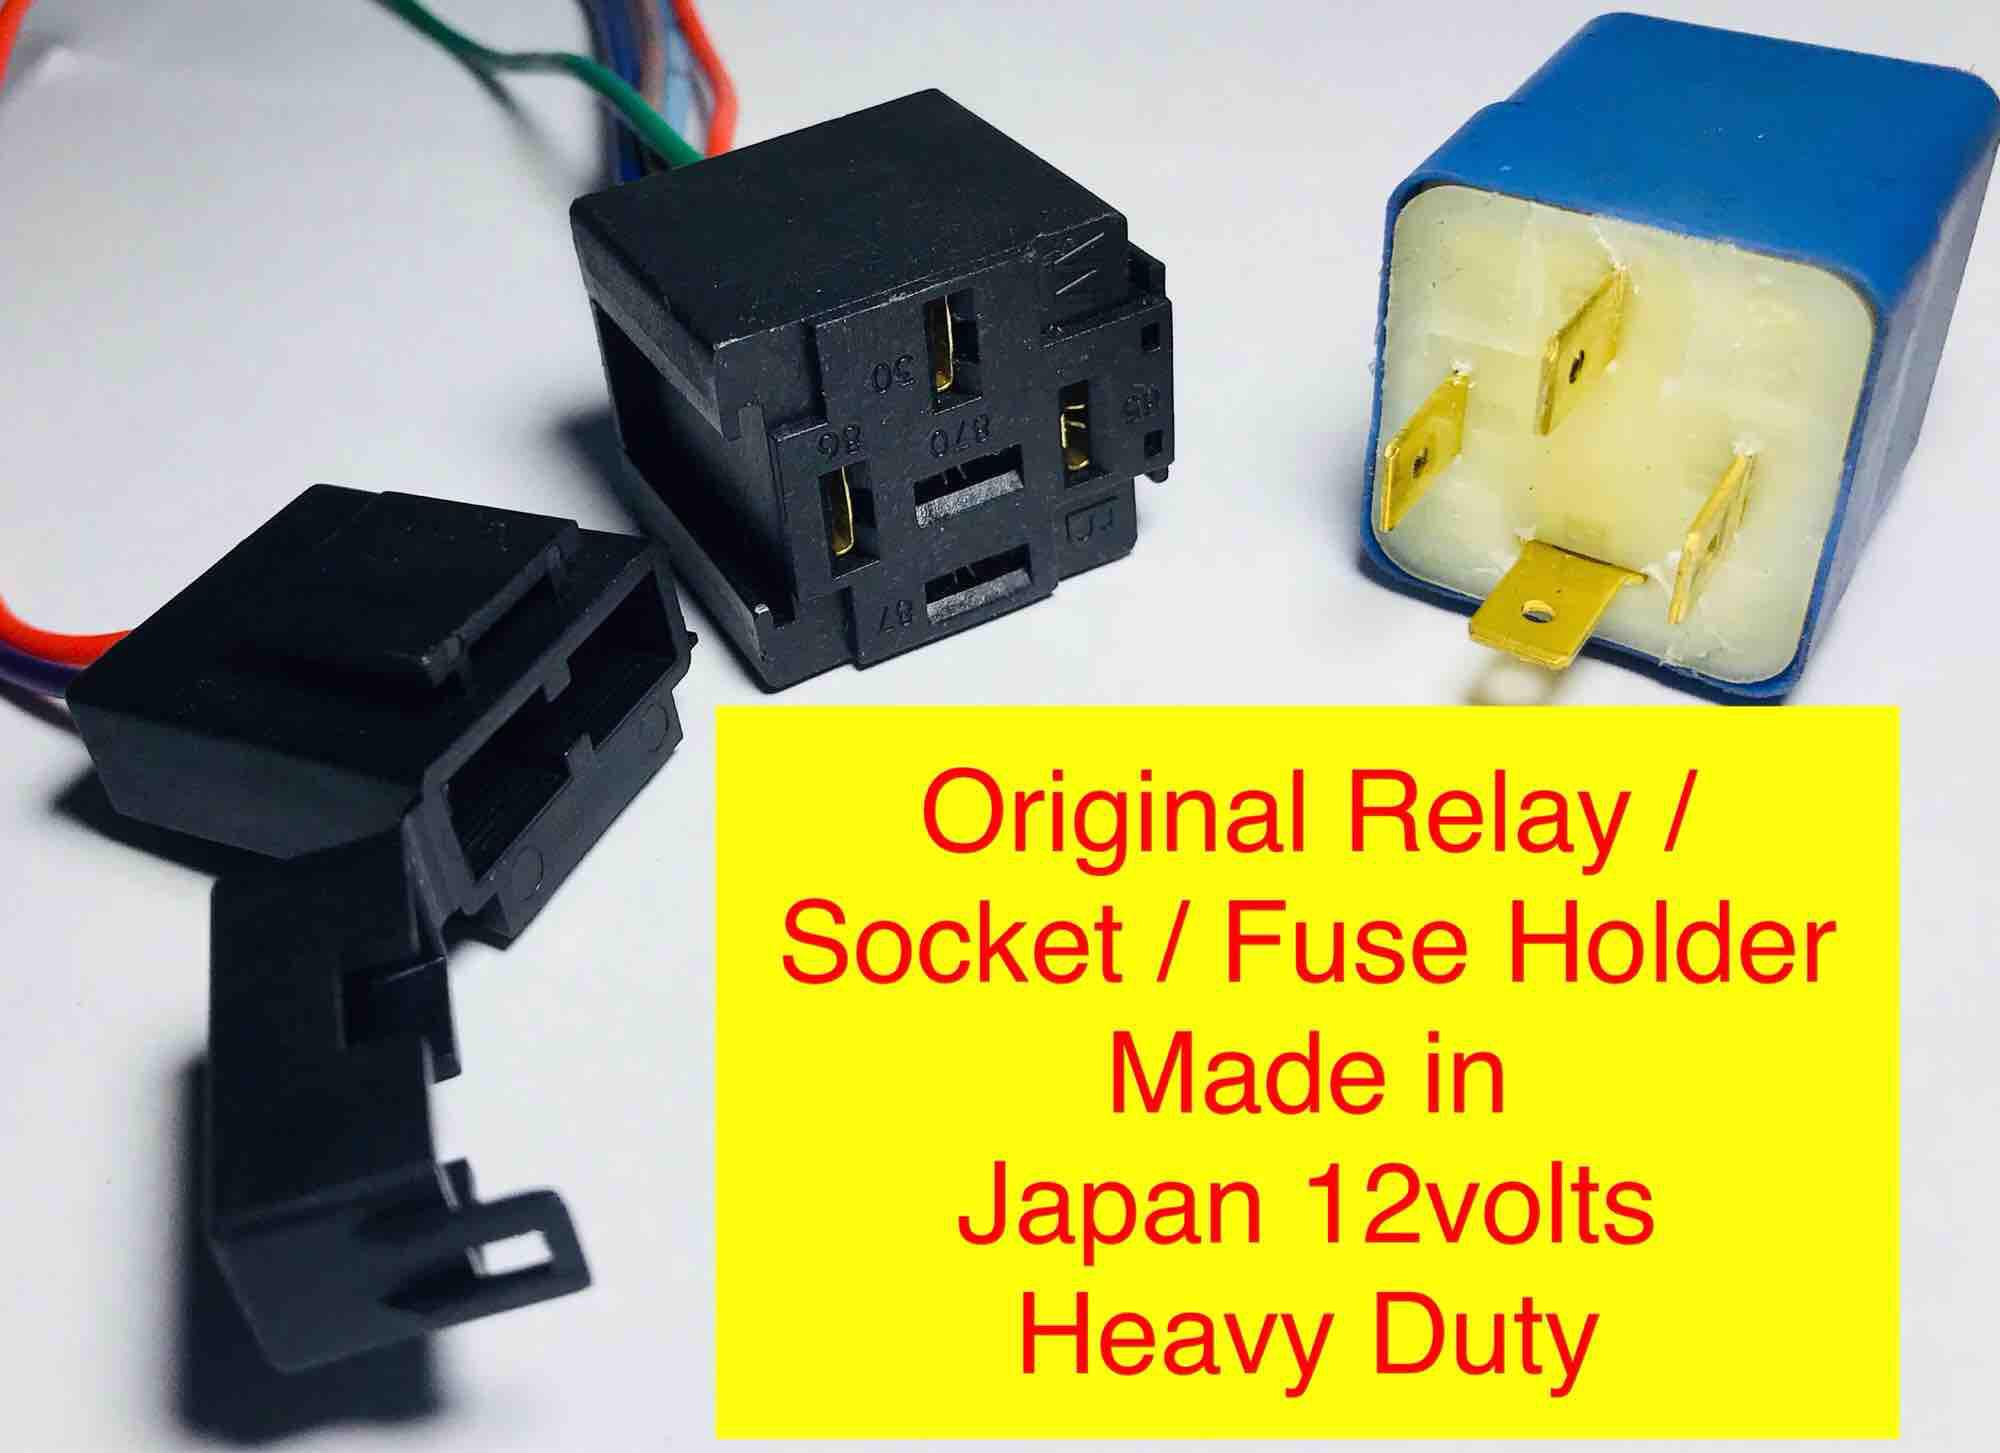 Car Relays For Sale Automotive Online Brands Prices Power Relay Honda Civic Auto 12v Socket Fuse Holder Like Bosch Original Universal